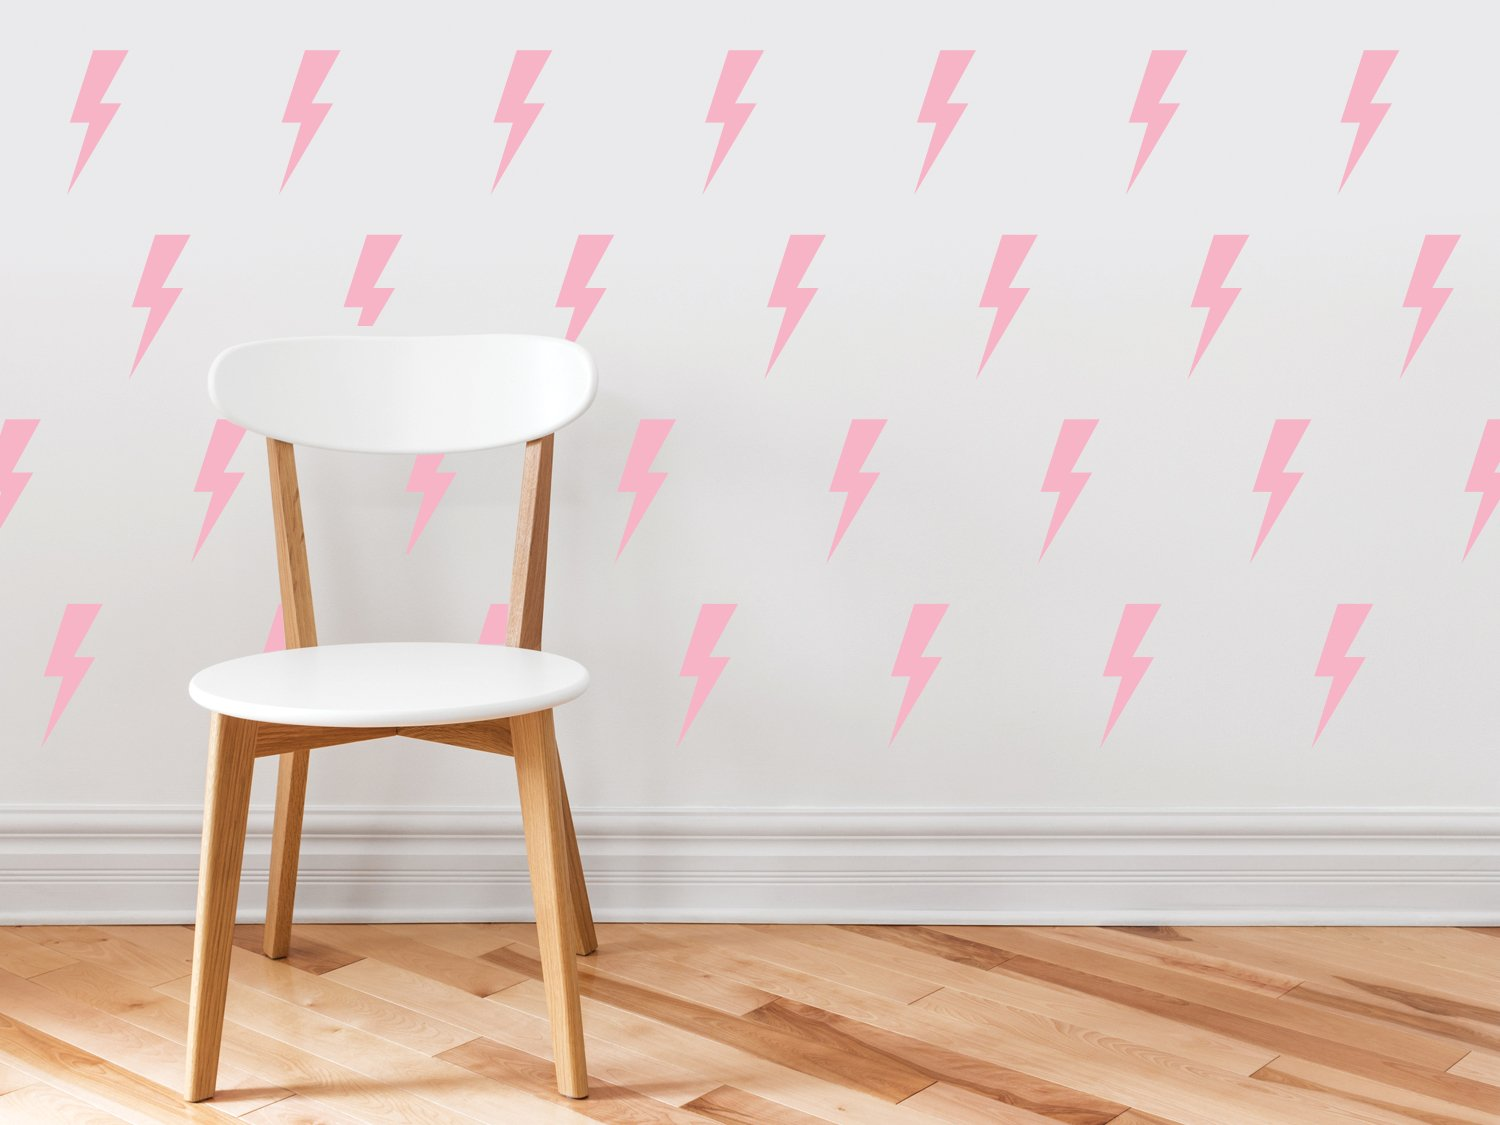 Lighting Bolts Fabric Wall Decals - Set of 50 Thunder Decals - Pink - Non-Toxic, Reusable, Repositionable